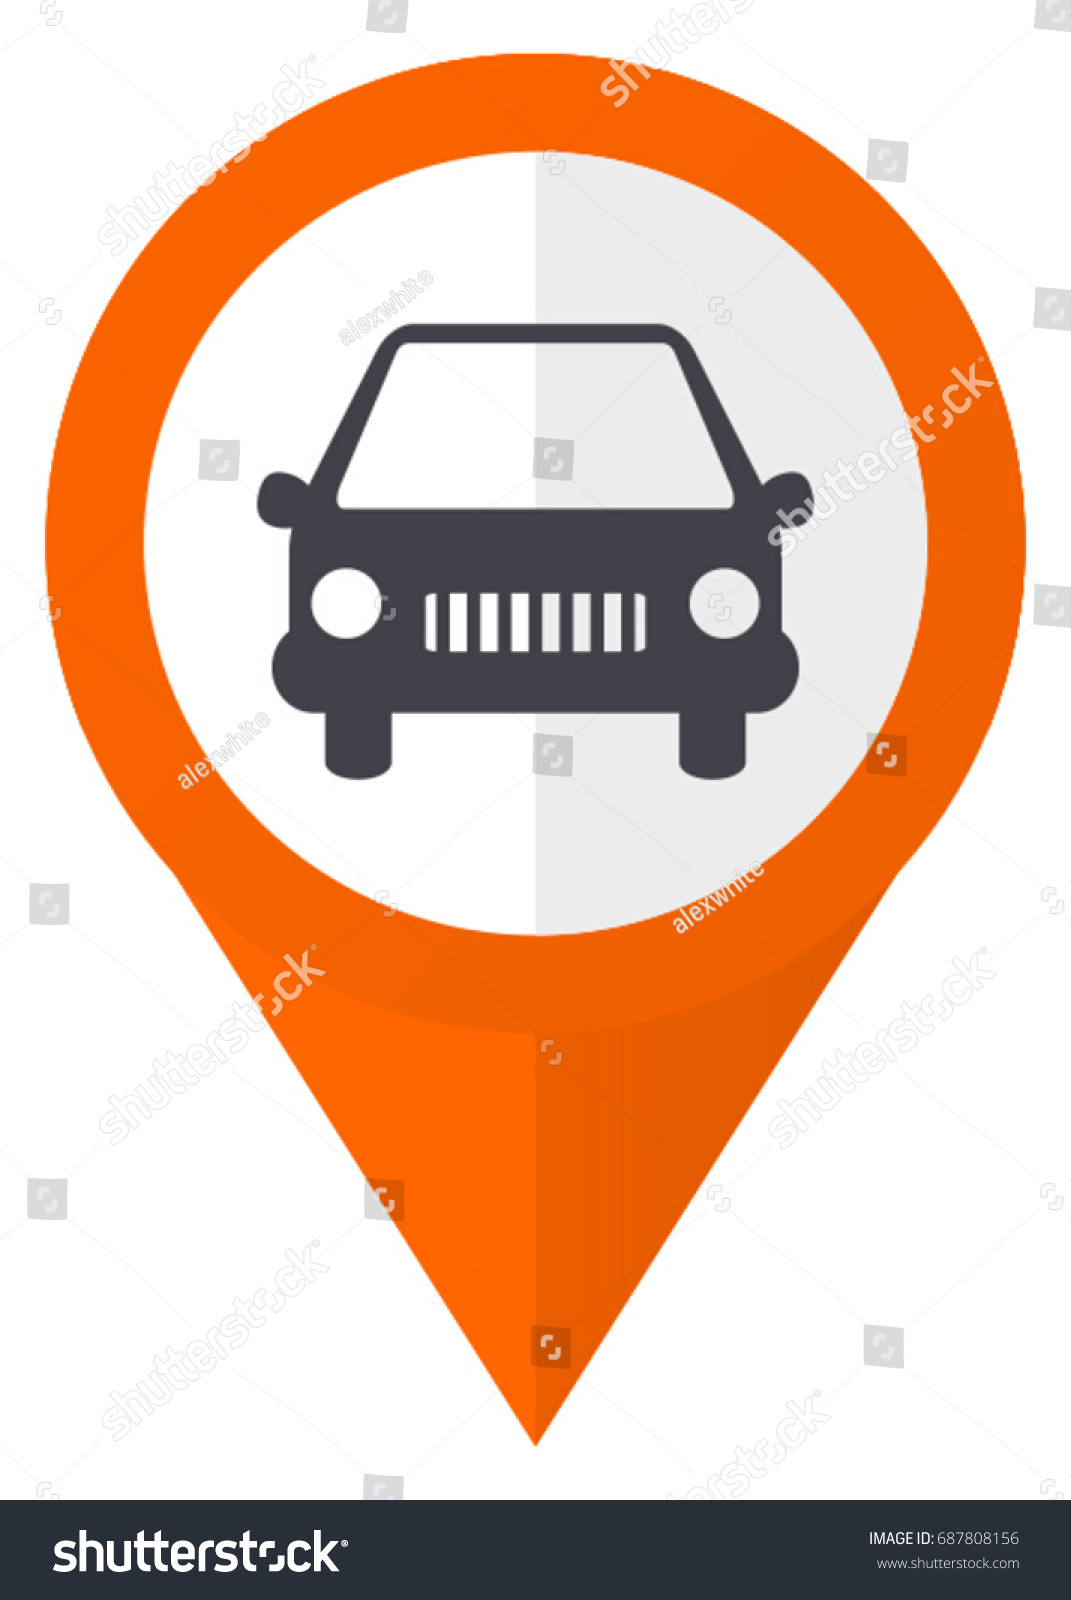 Car auto vehicle orange pointer vector stock vector 687808156 car auto vehicle orange pointer vector icon in eps 10 isolated on white background biocorpaavc